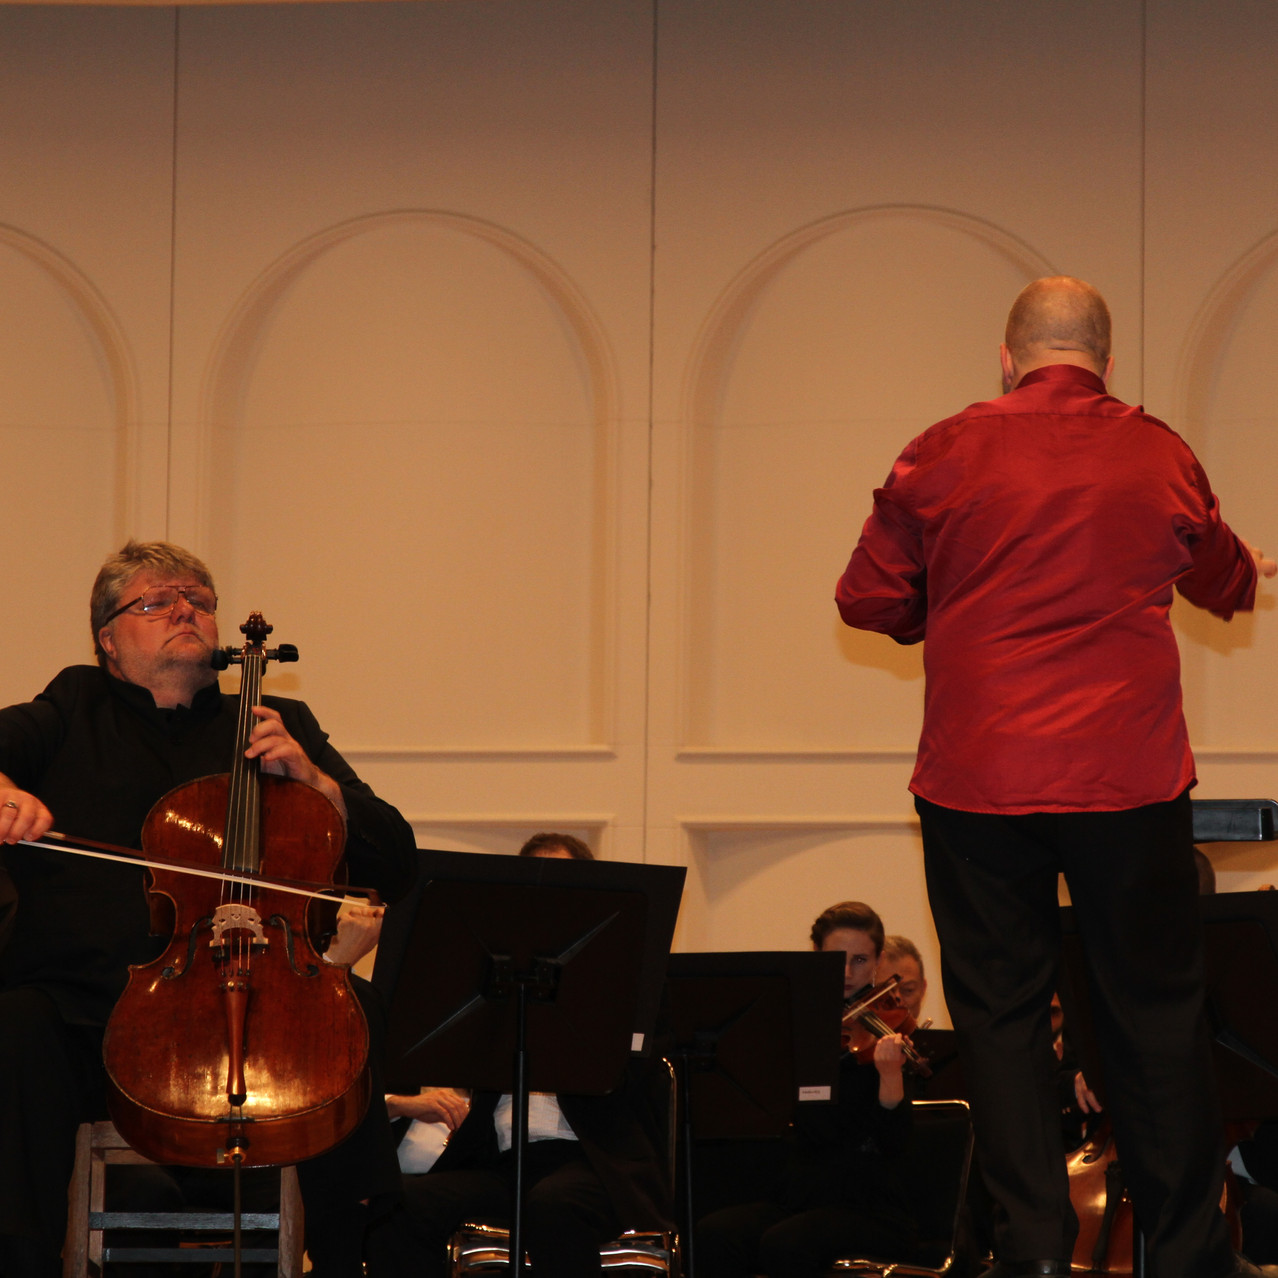 Performing Saint-Saëns' Cello Concerto in Daytona Beach